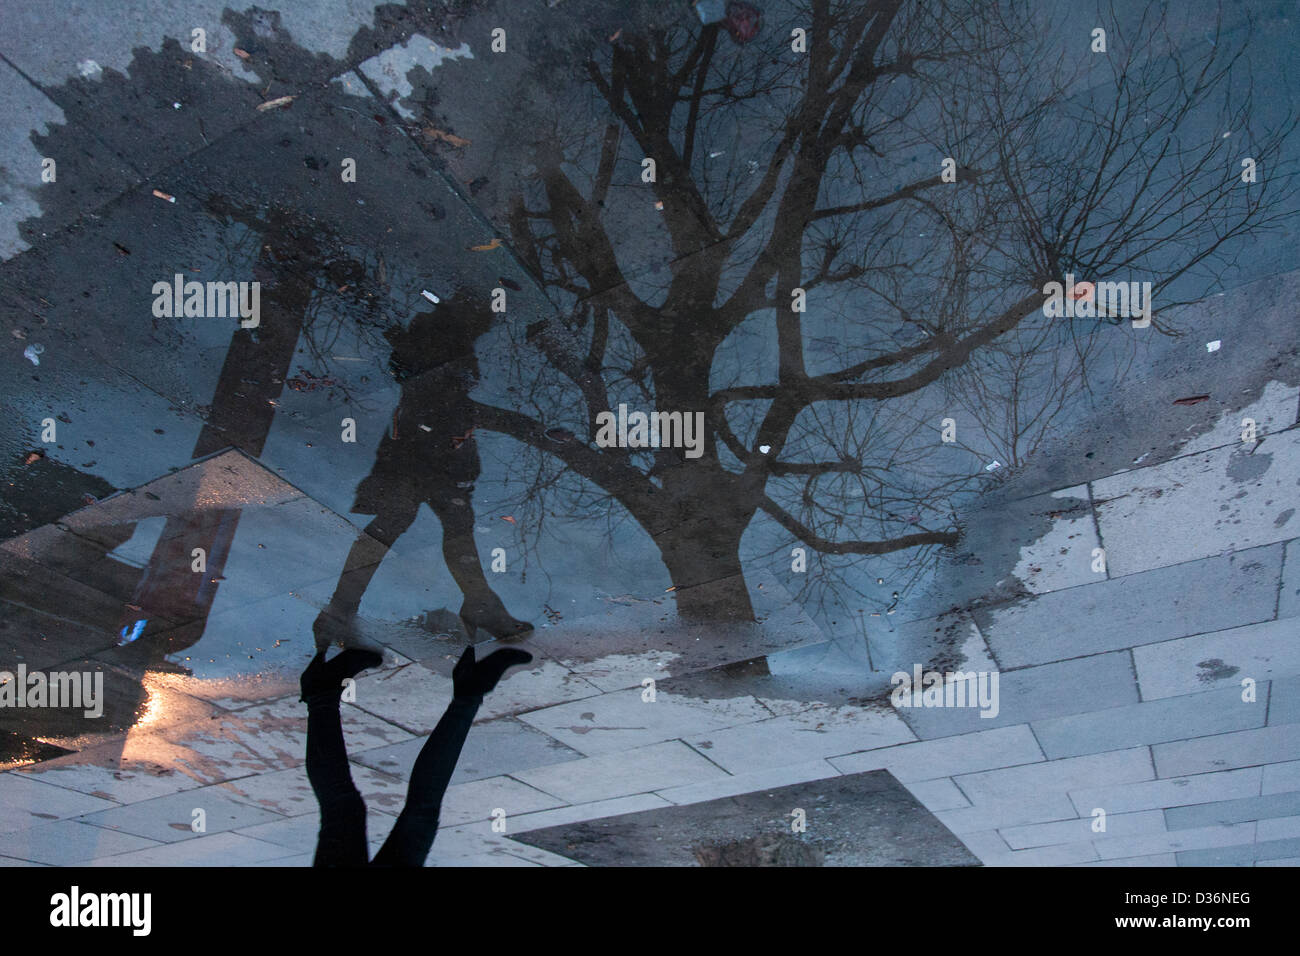 Reflection in puddle on pavement of woman walking next to tree at twilight - Stock Image